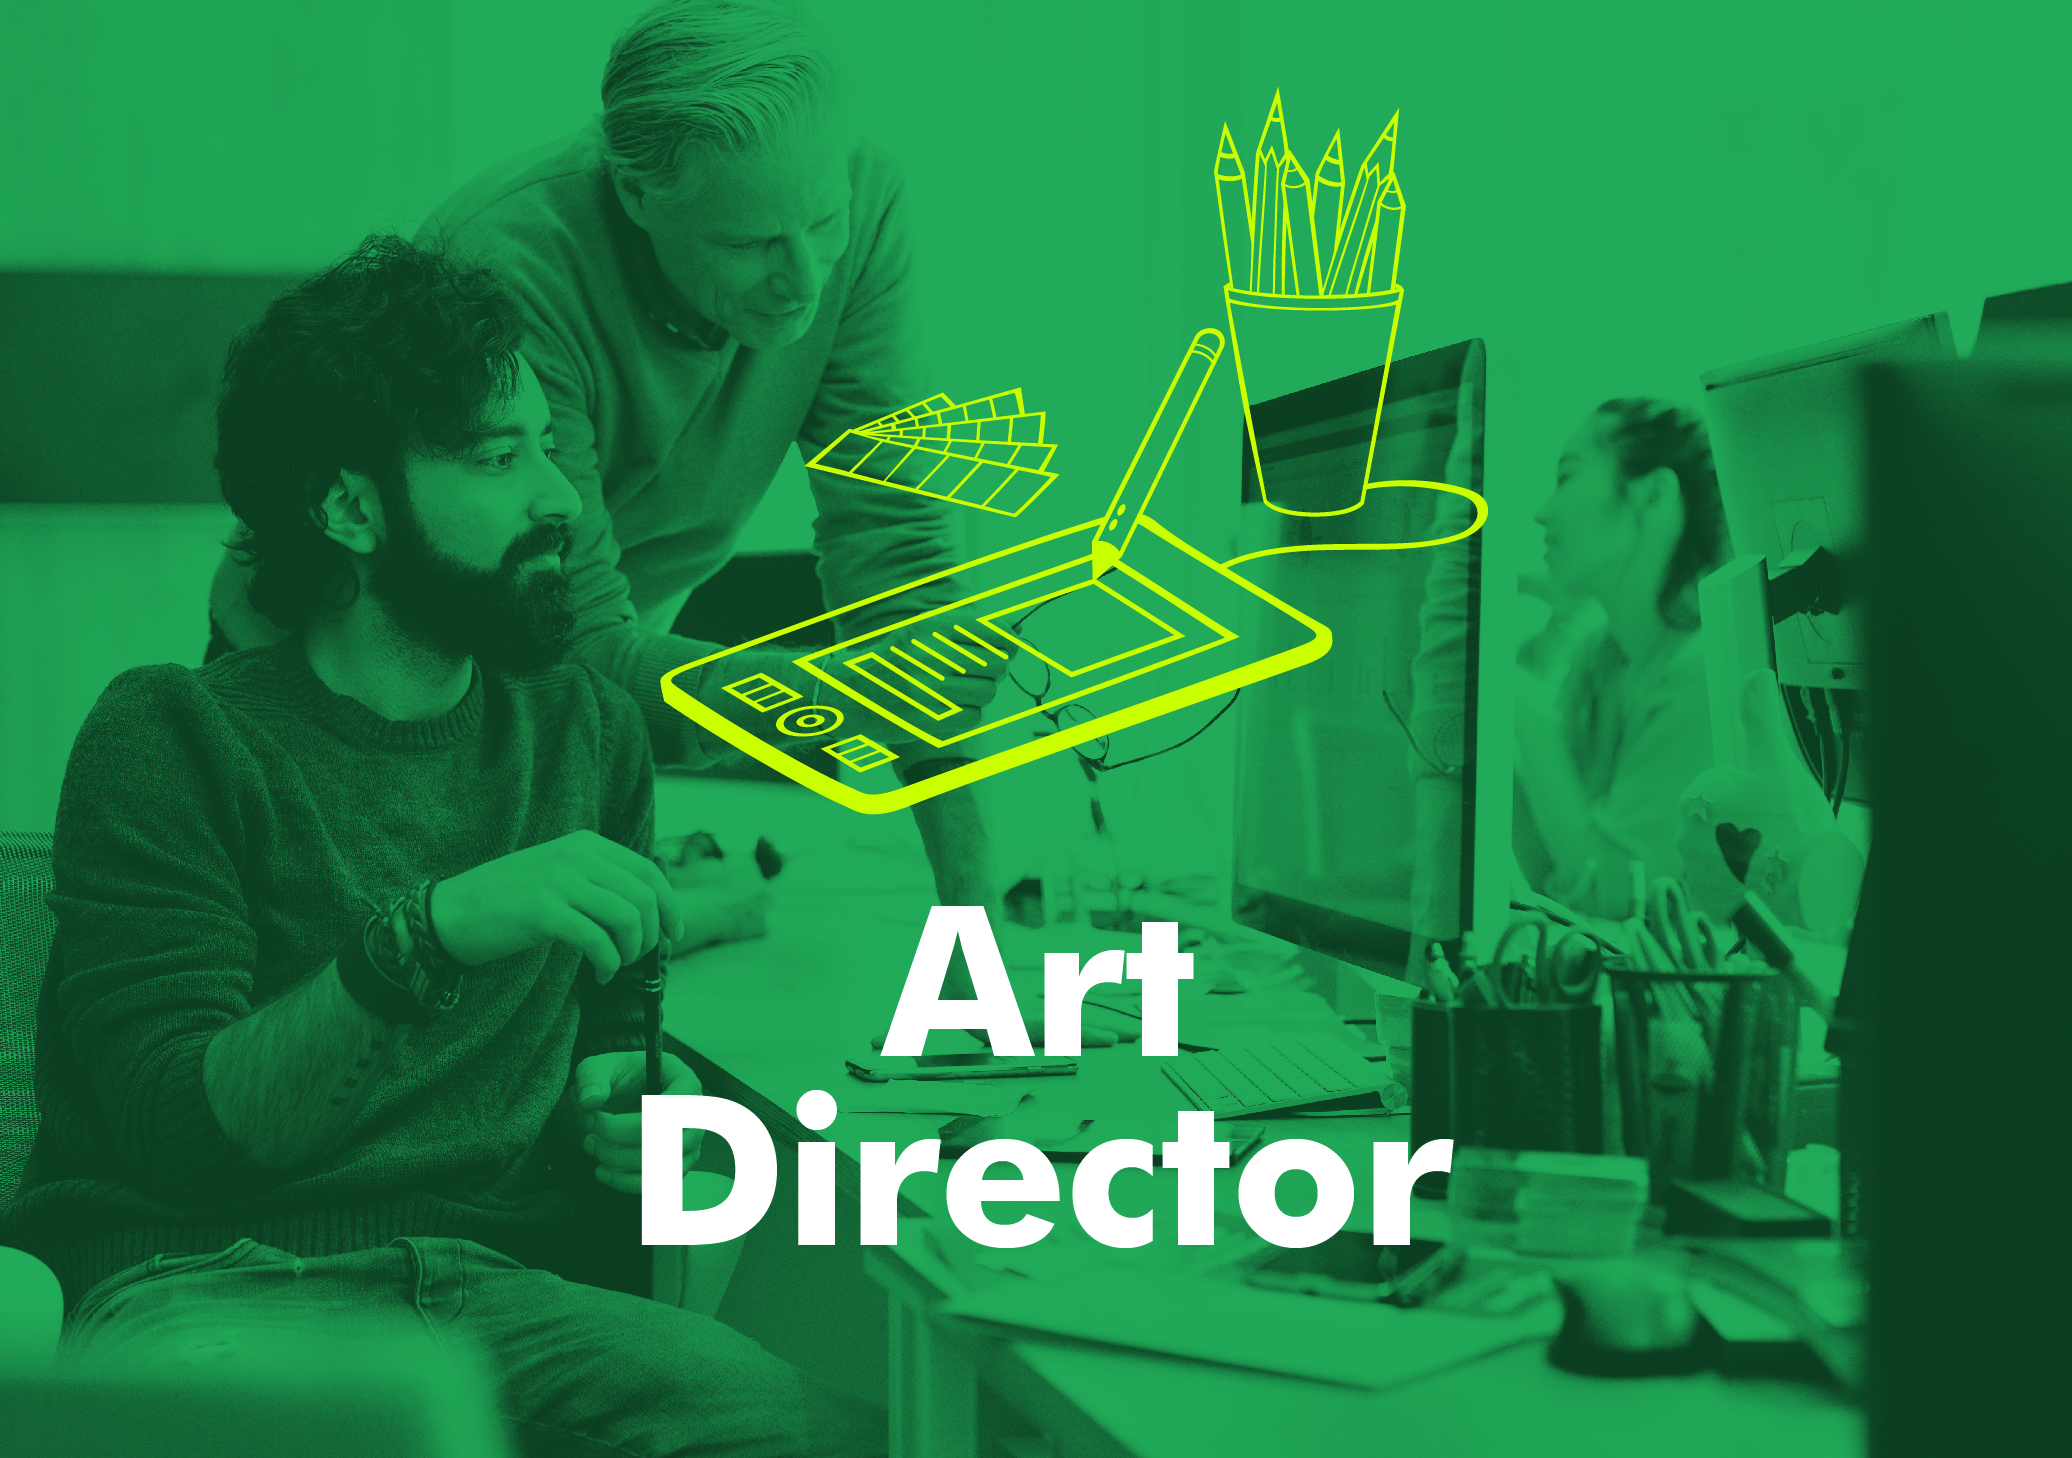 Art Director Job Description And Salary Outlook Robert Half